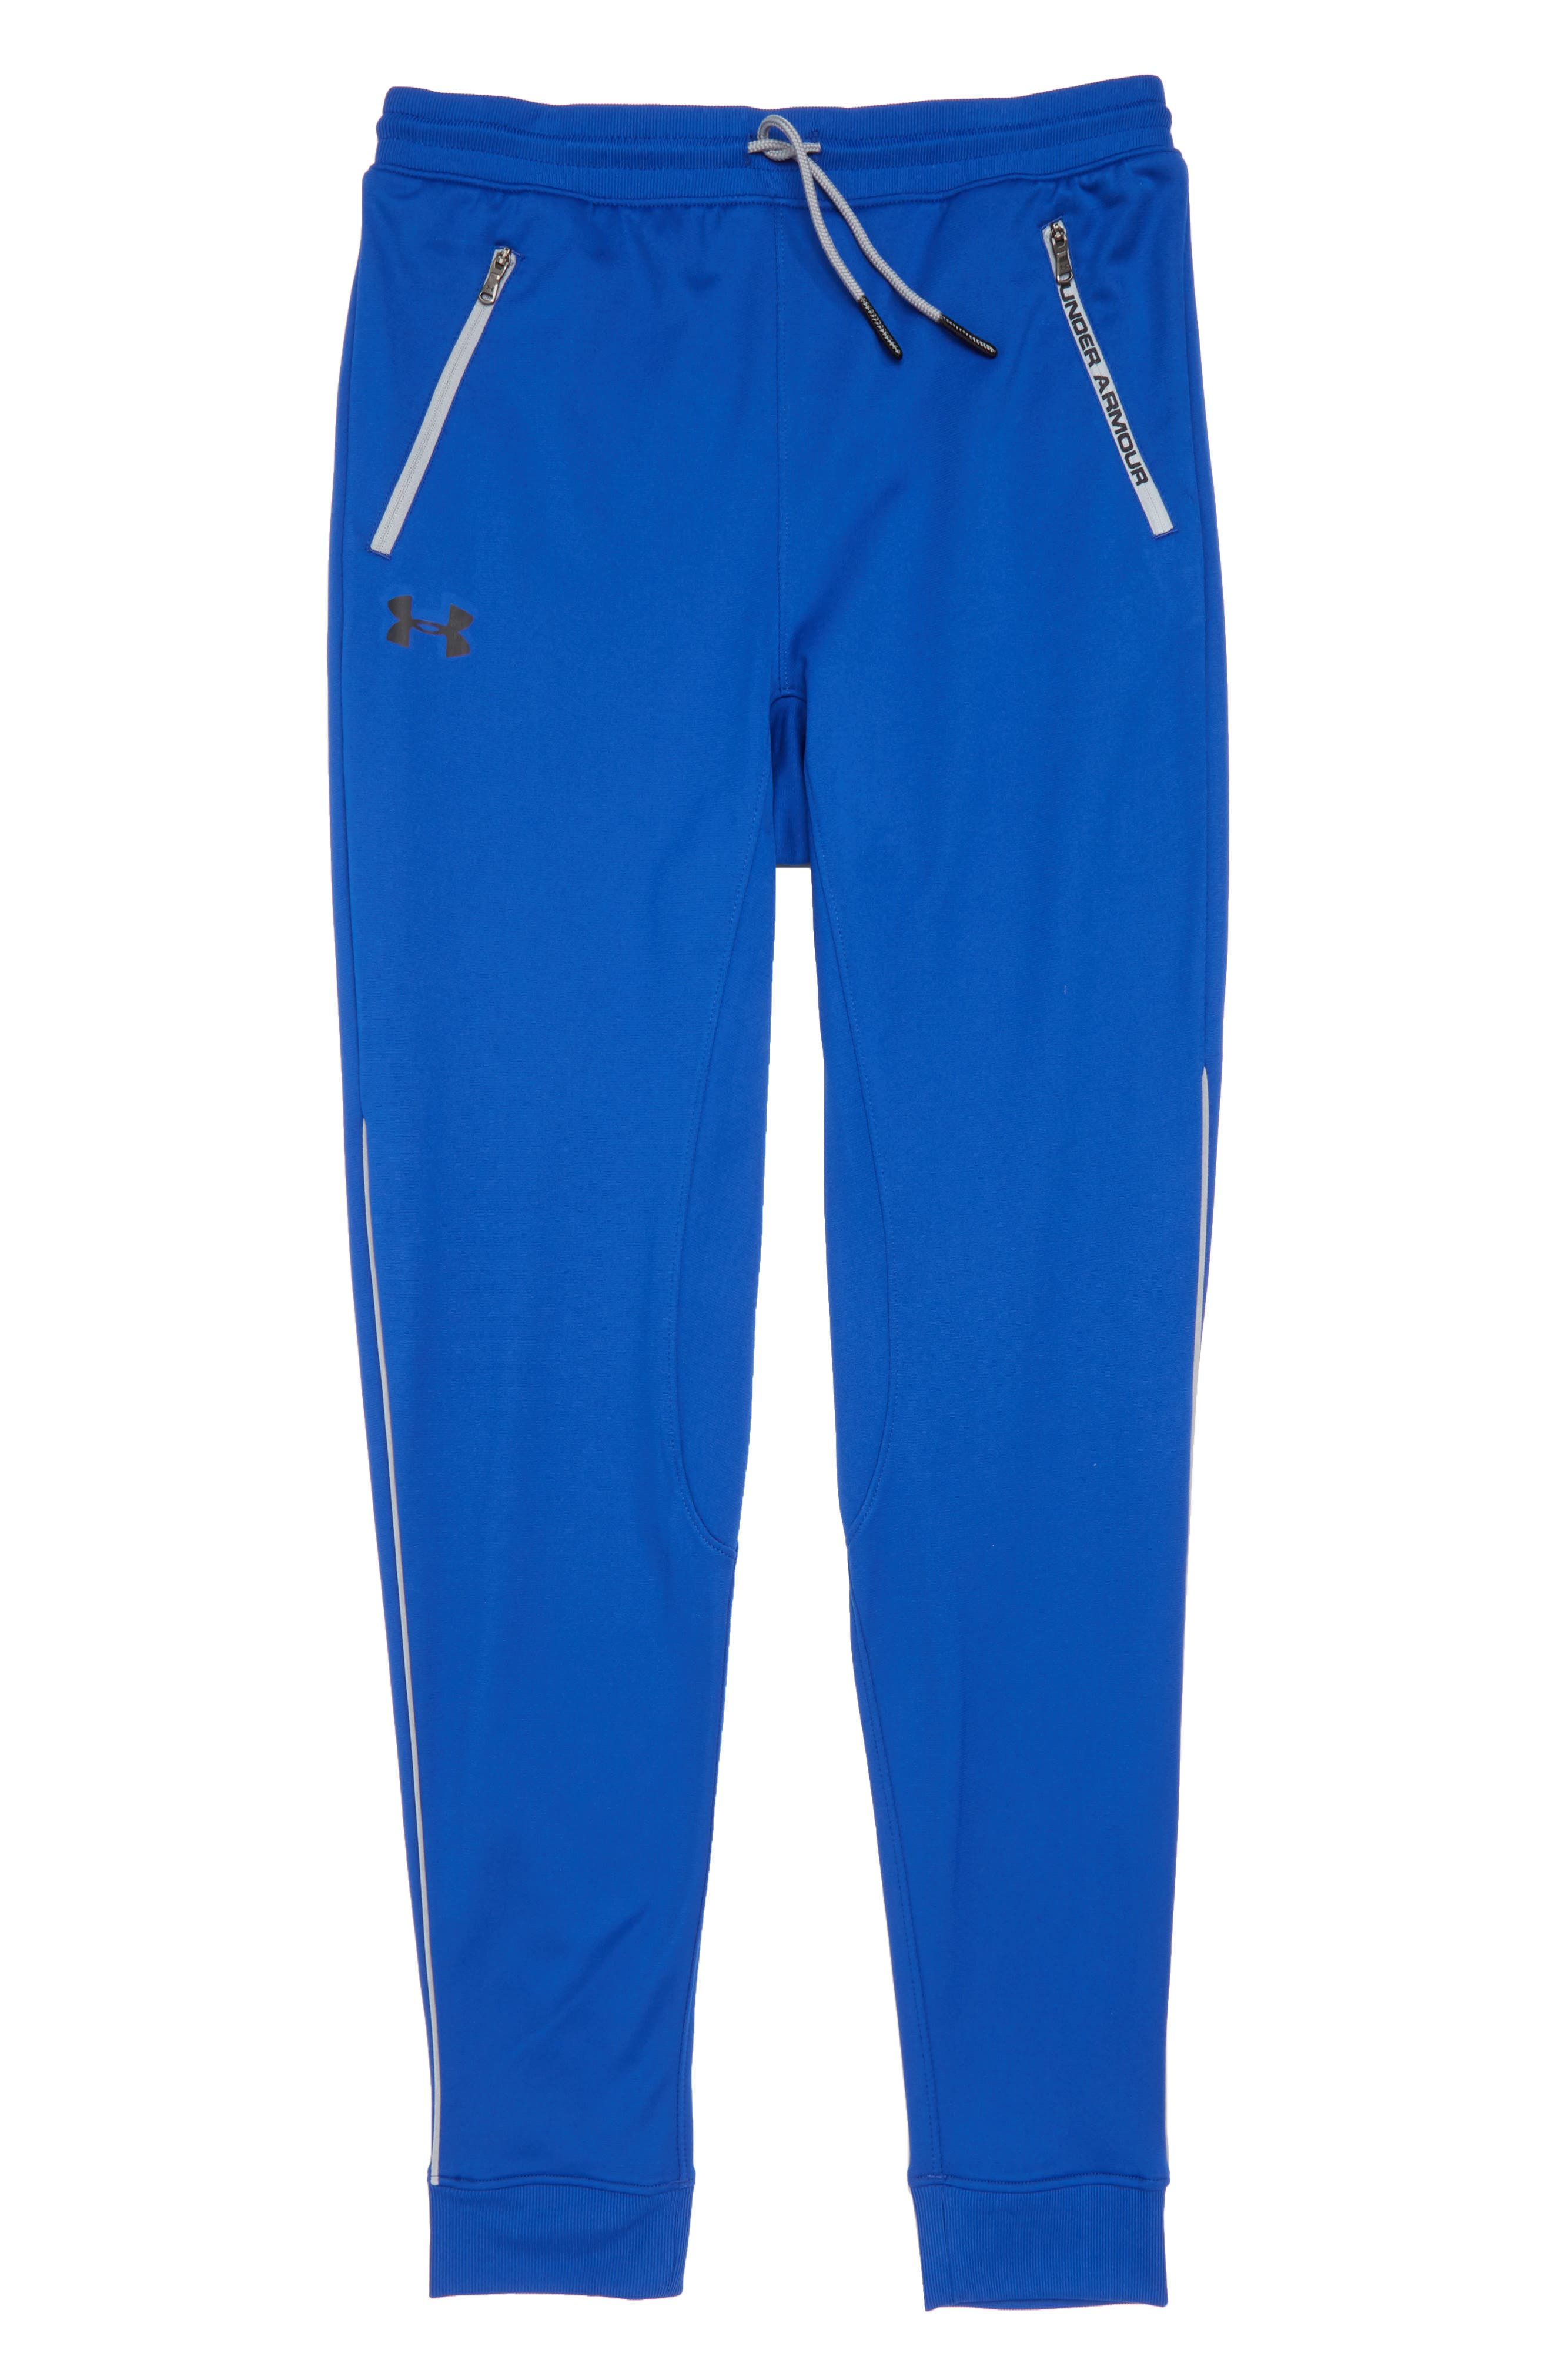 'Pennant' Tapered Pants,                             Main thumbnail 1, color,                             ROYAL/ STEEL